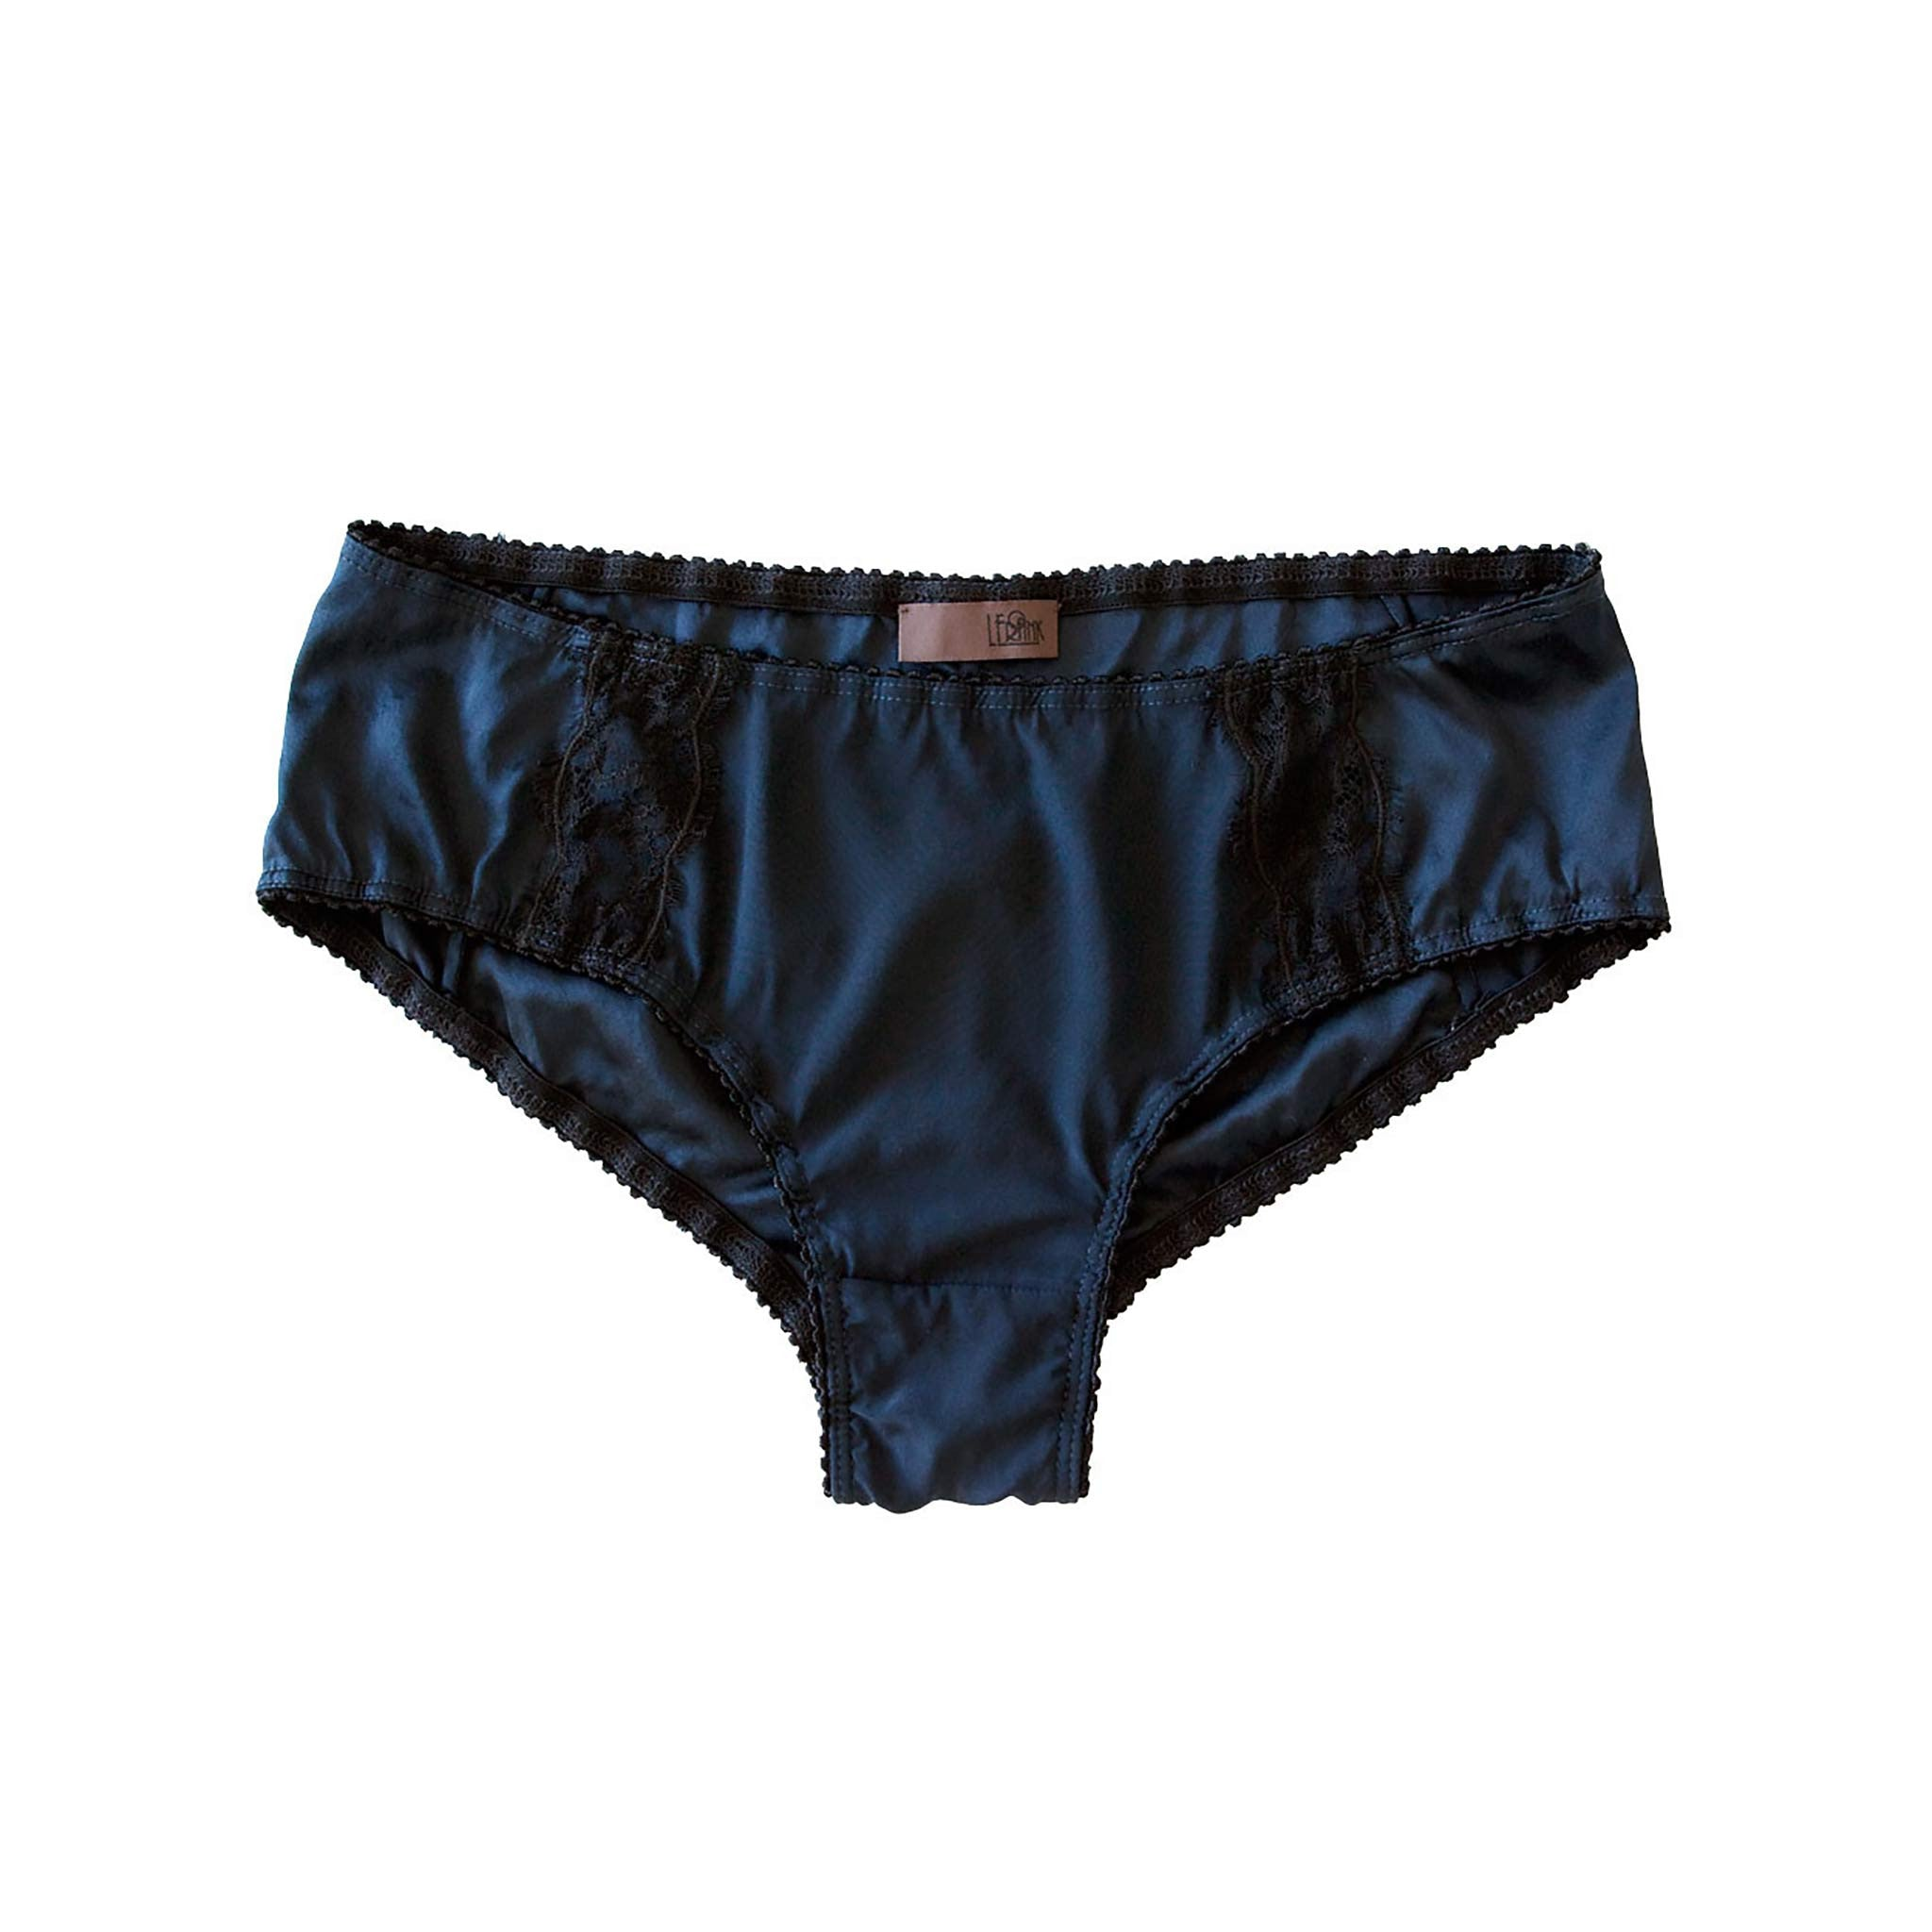 Hera Brief in Sapphire Stretch Silk Charmeuse